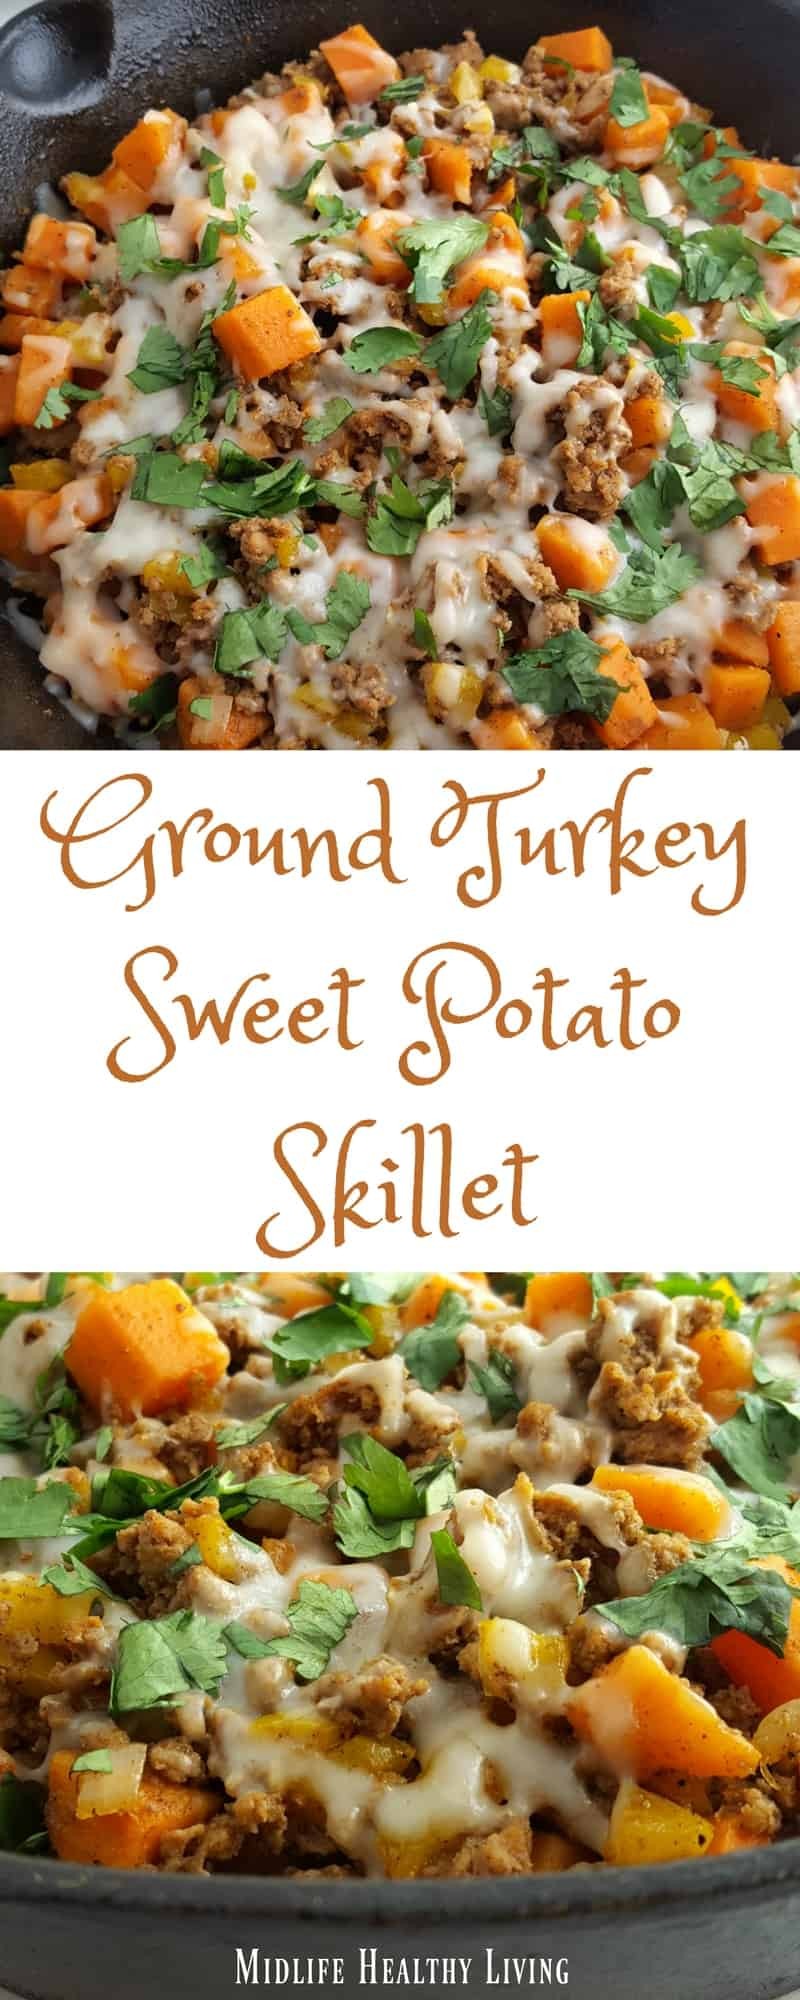 This ground turkey sweet potato skillet recipe is simple, easy, delicious, and Weight Watchers friendly! Each serving is only 6 Freestyle Smart Points.